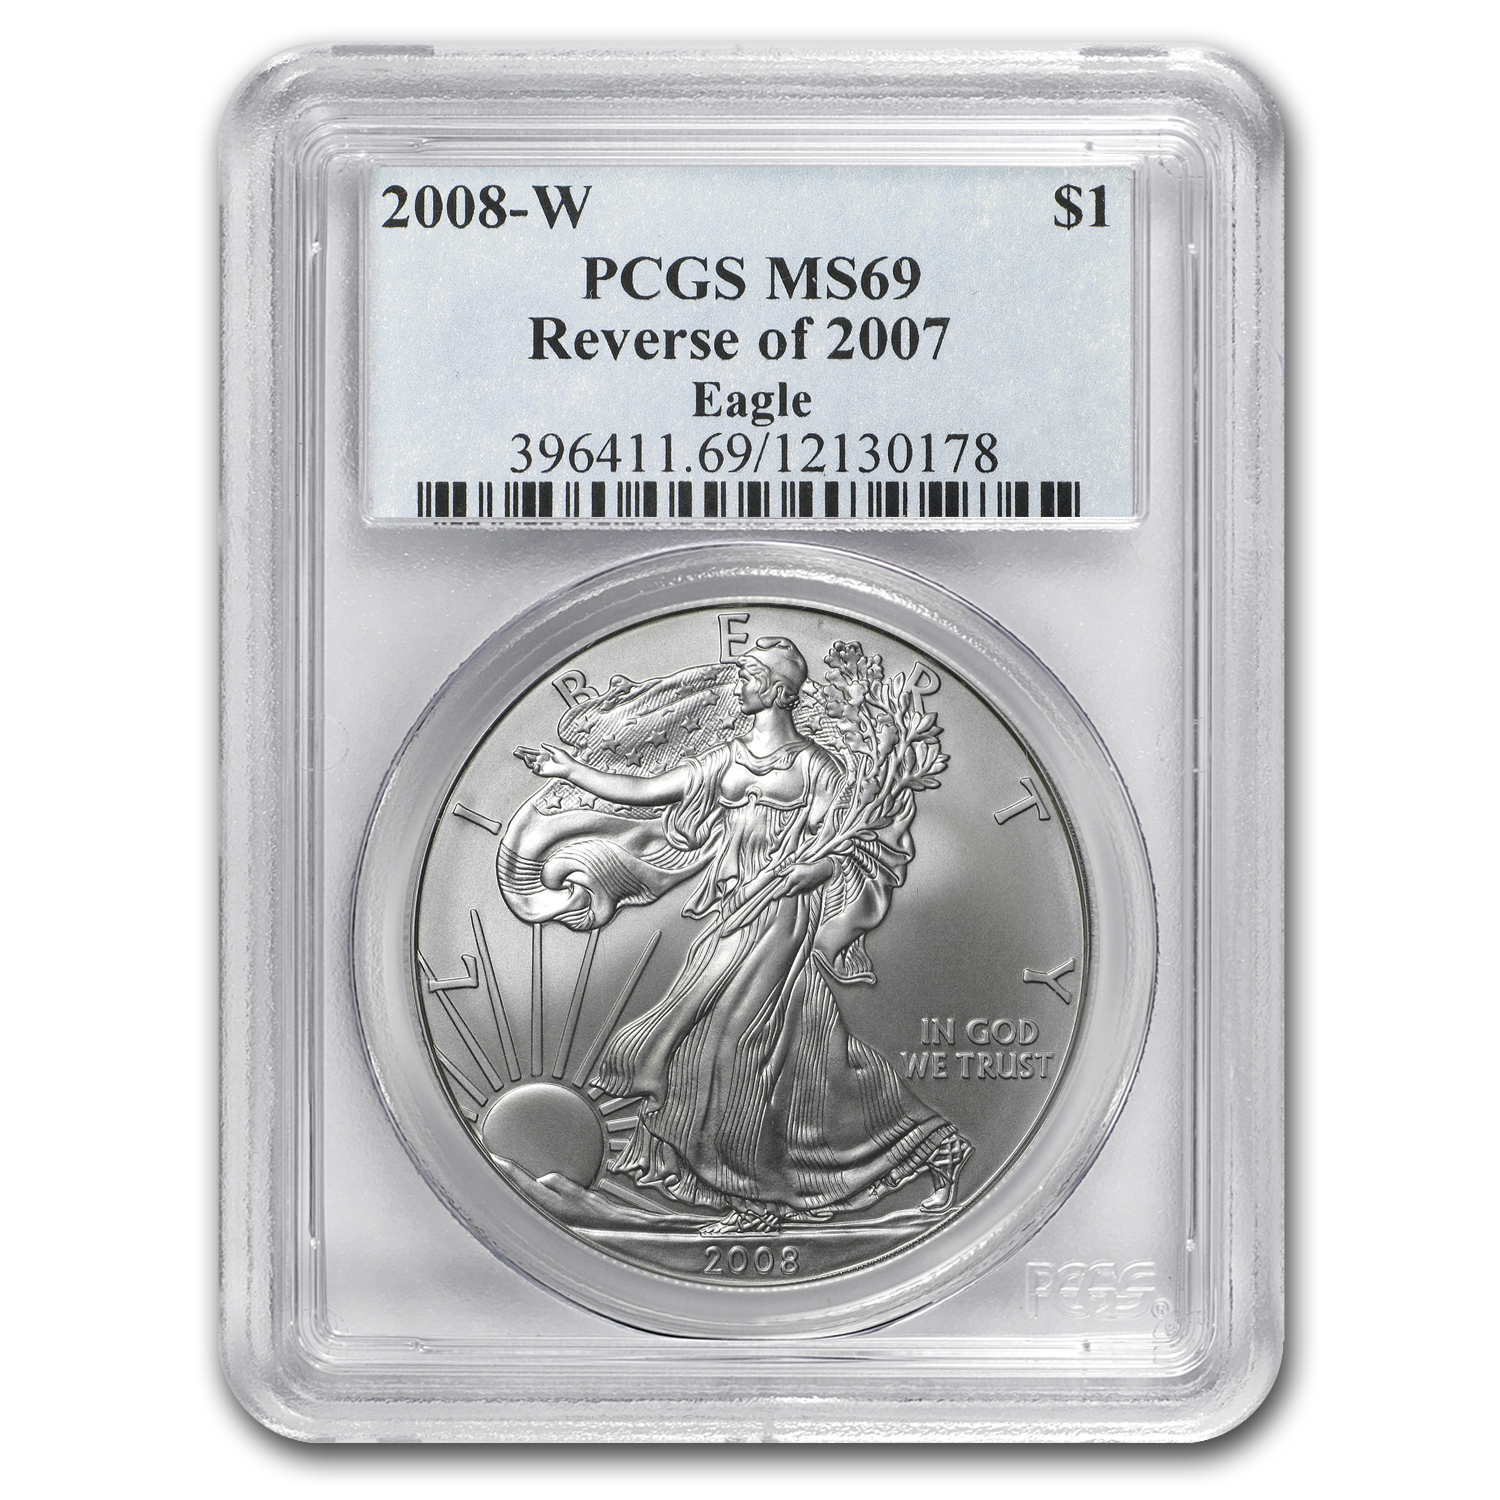 2008-W (Burnished) Silver American Eagle MS-69 PCGS (Rev '07)